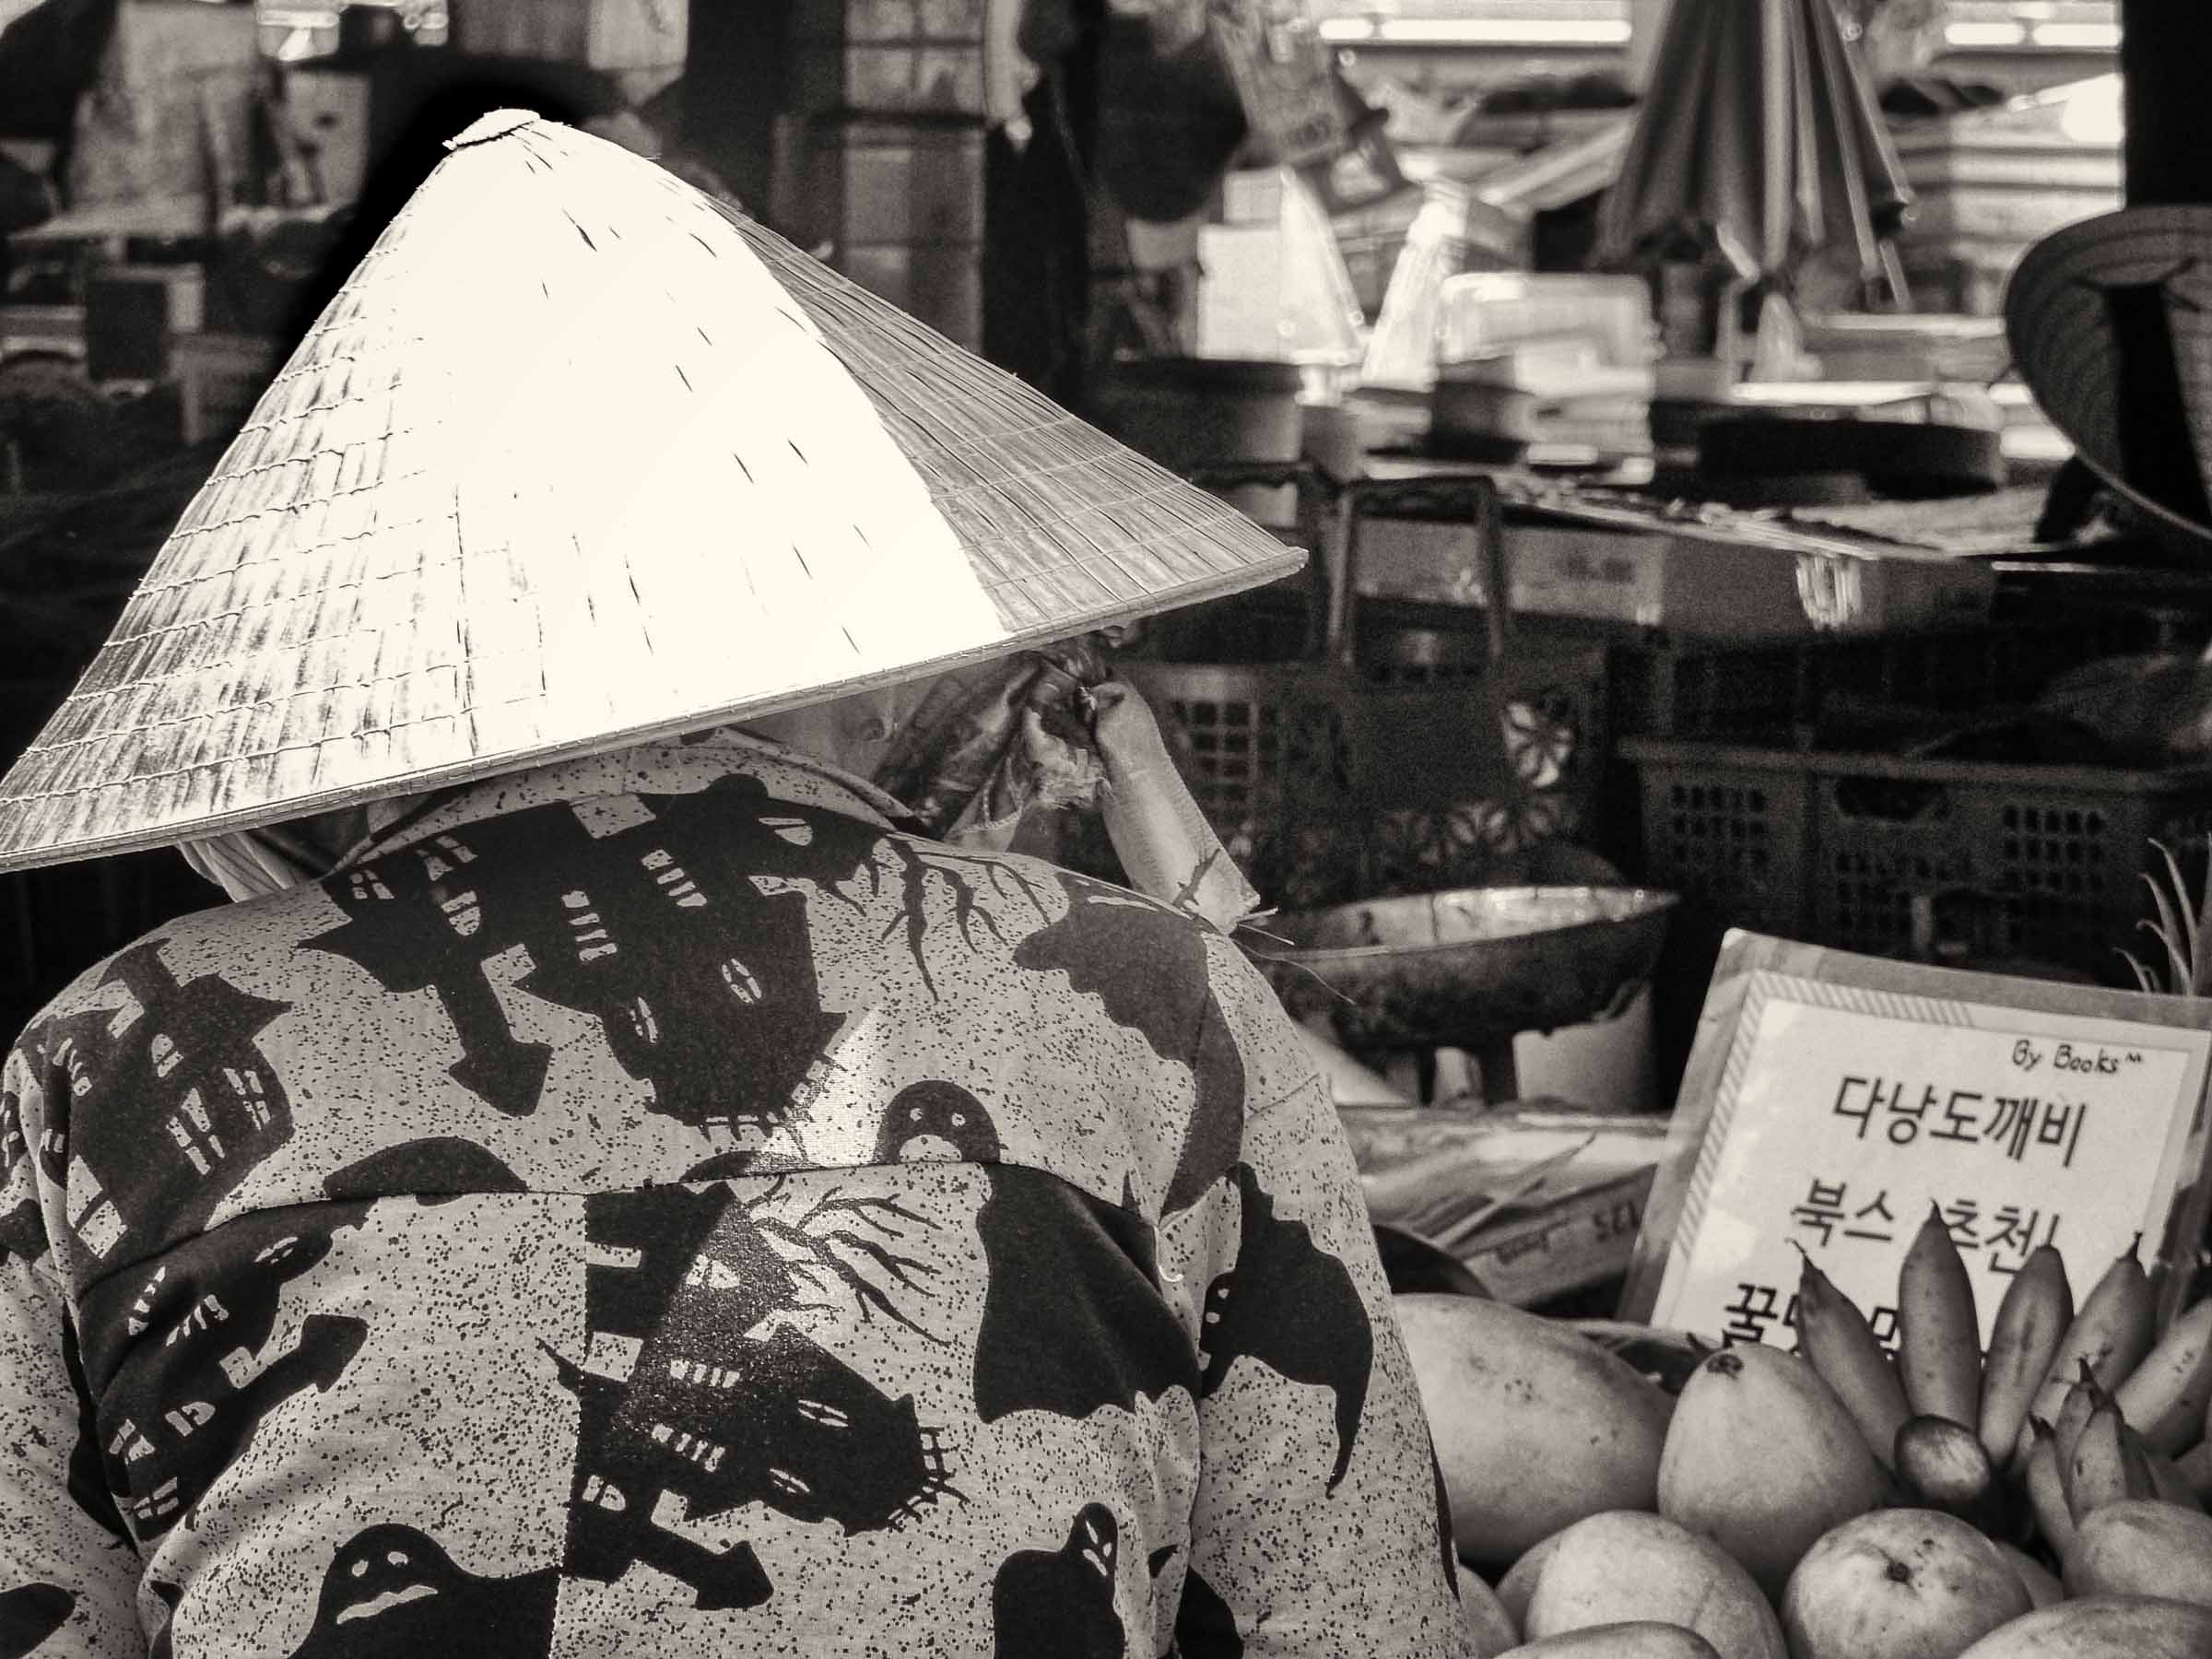 Lady in conical hat at a fruit stall in a market